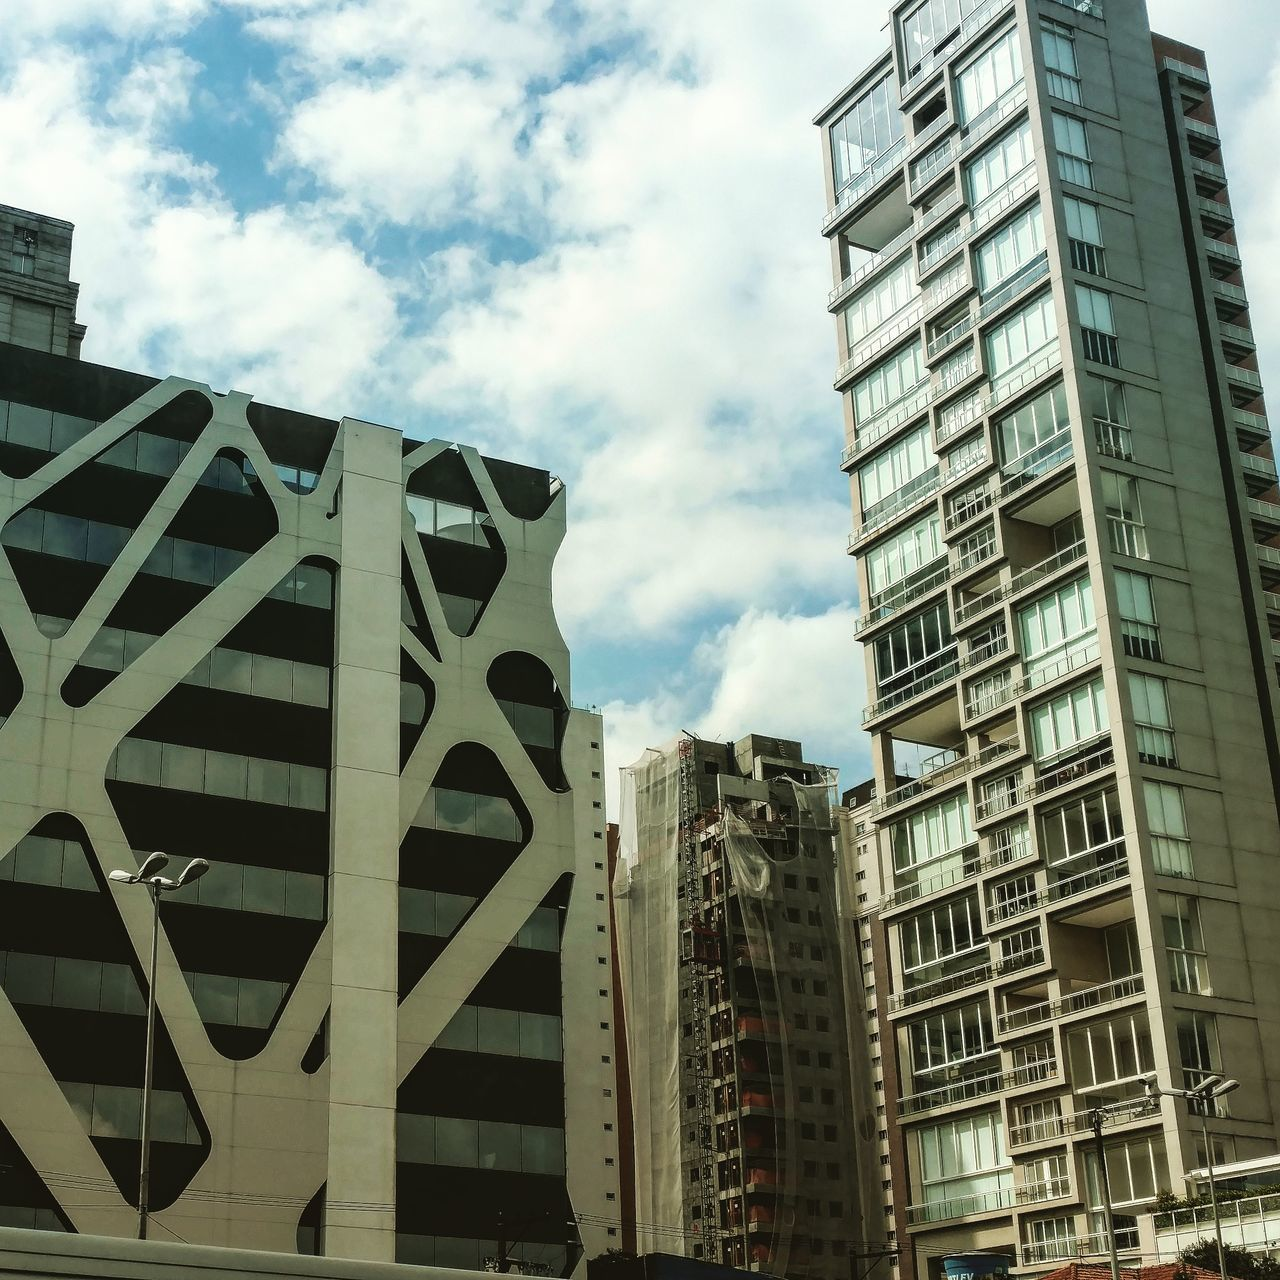 architecture, building exterior, built structure, low angle view, sky, modern, day, outdoors, skyscraper, city, no people